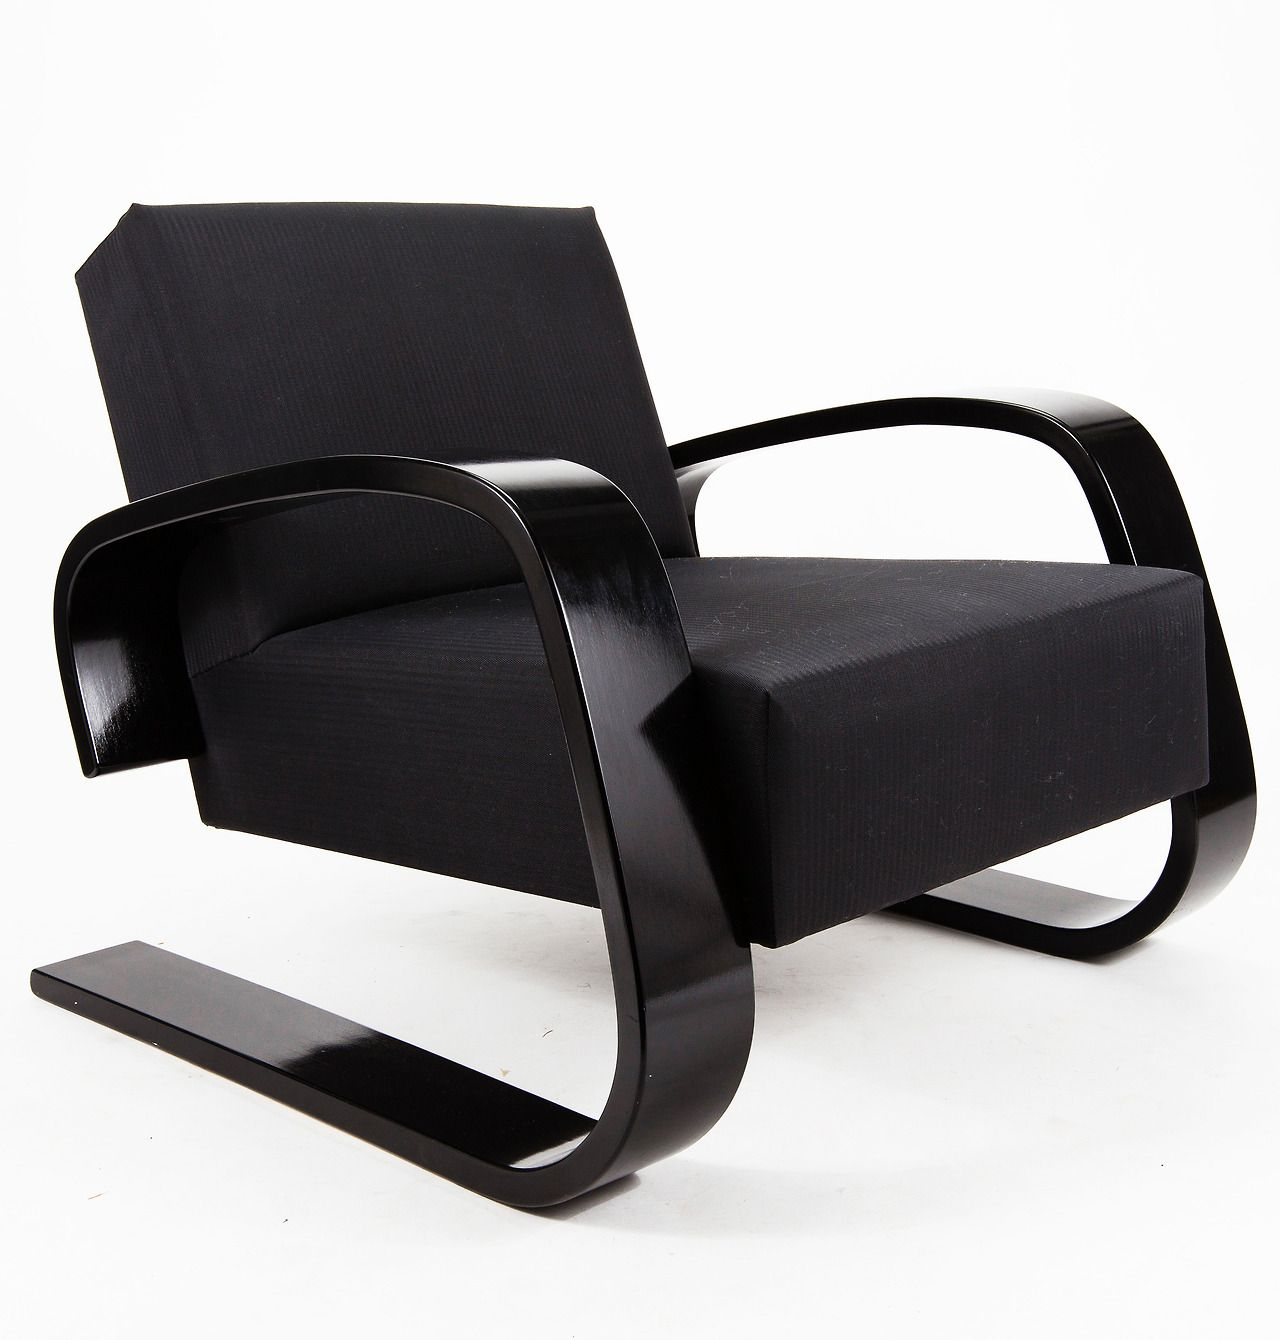 Alvar Aalto Tank chair model nr400 designed in 1936 and produced